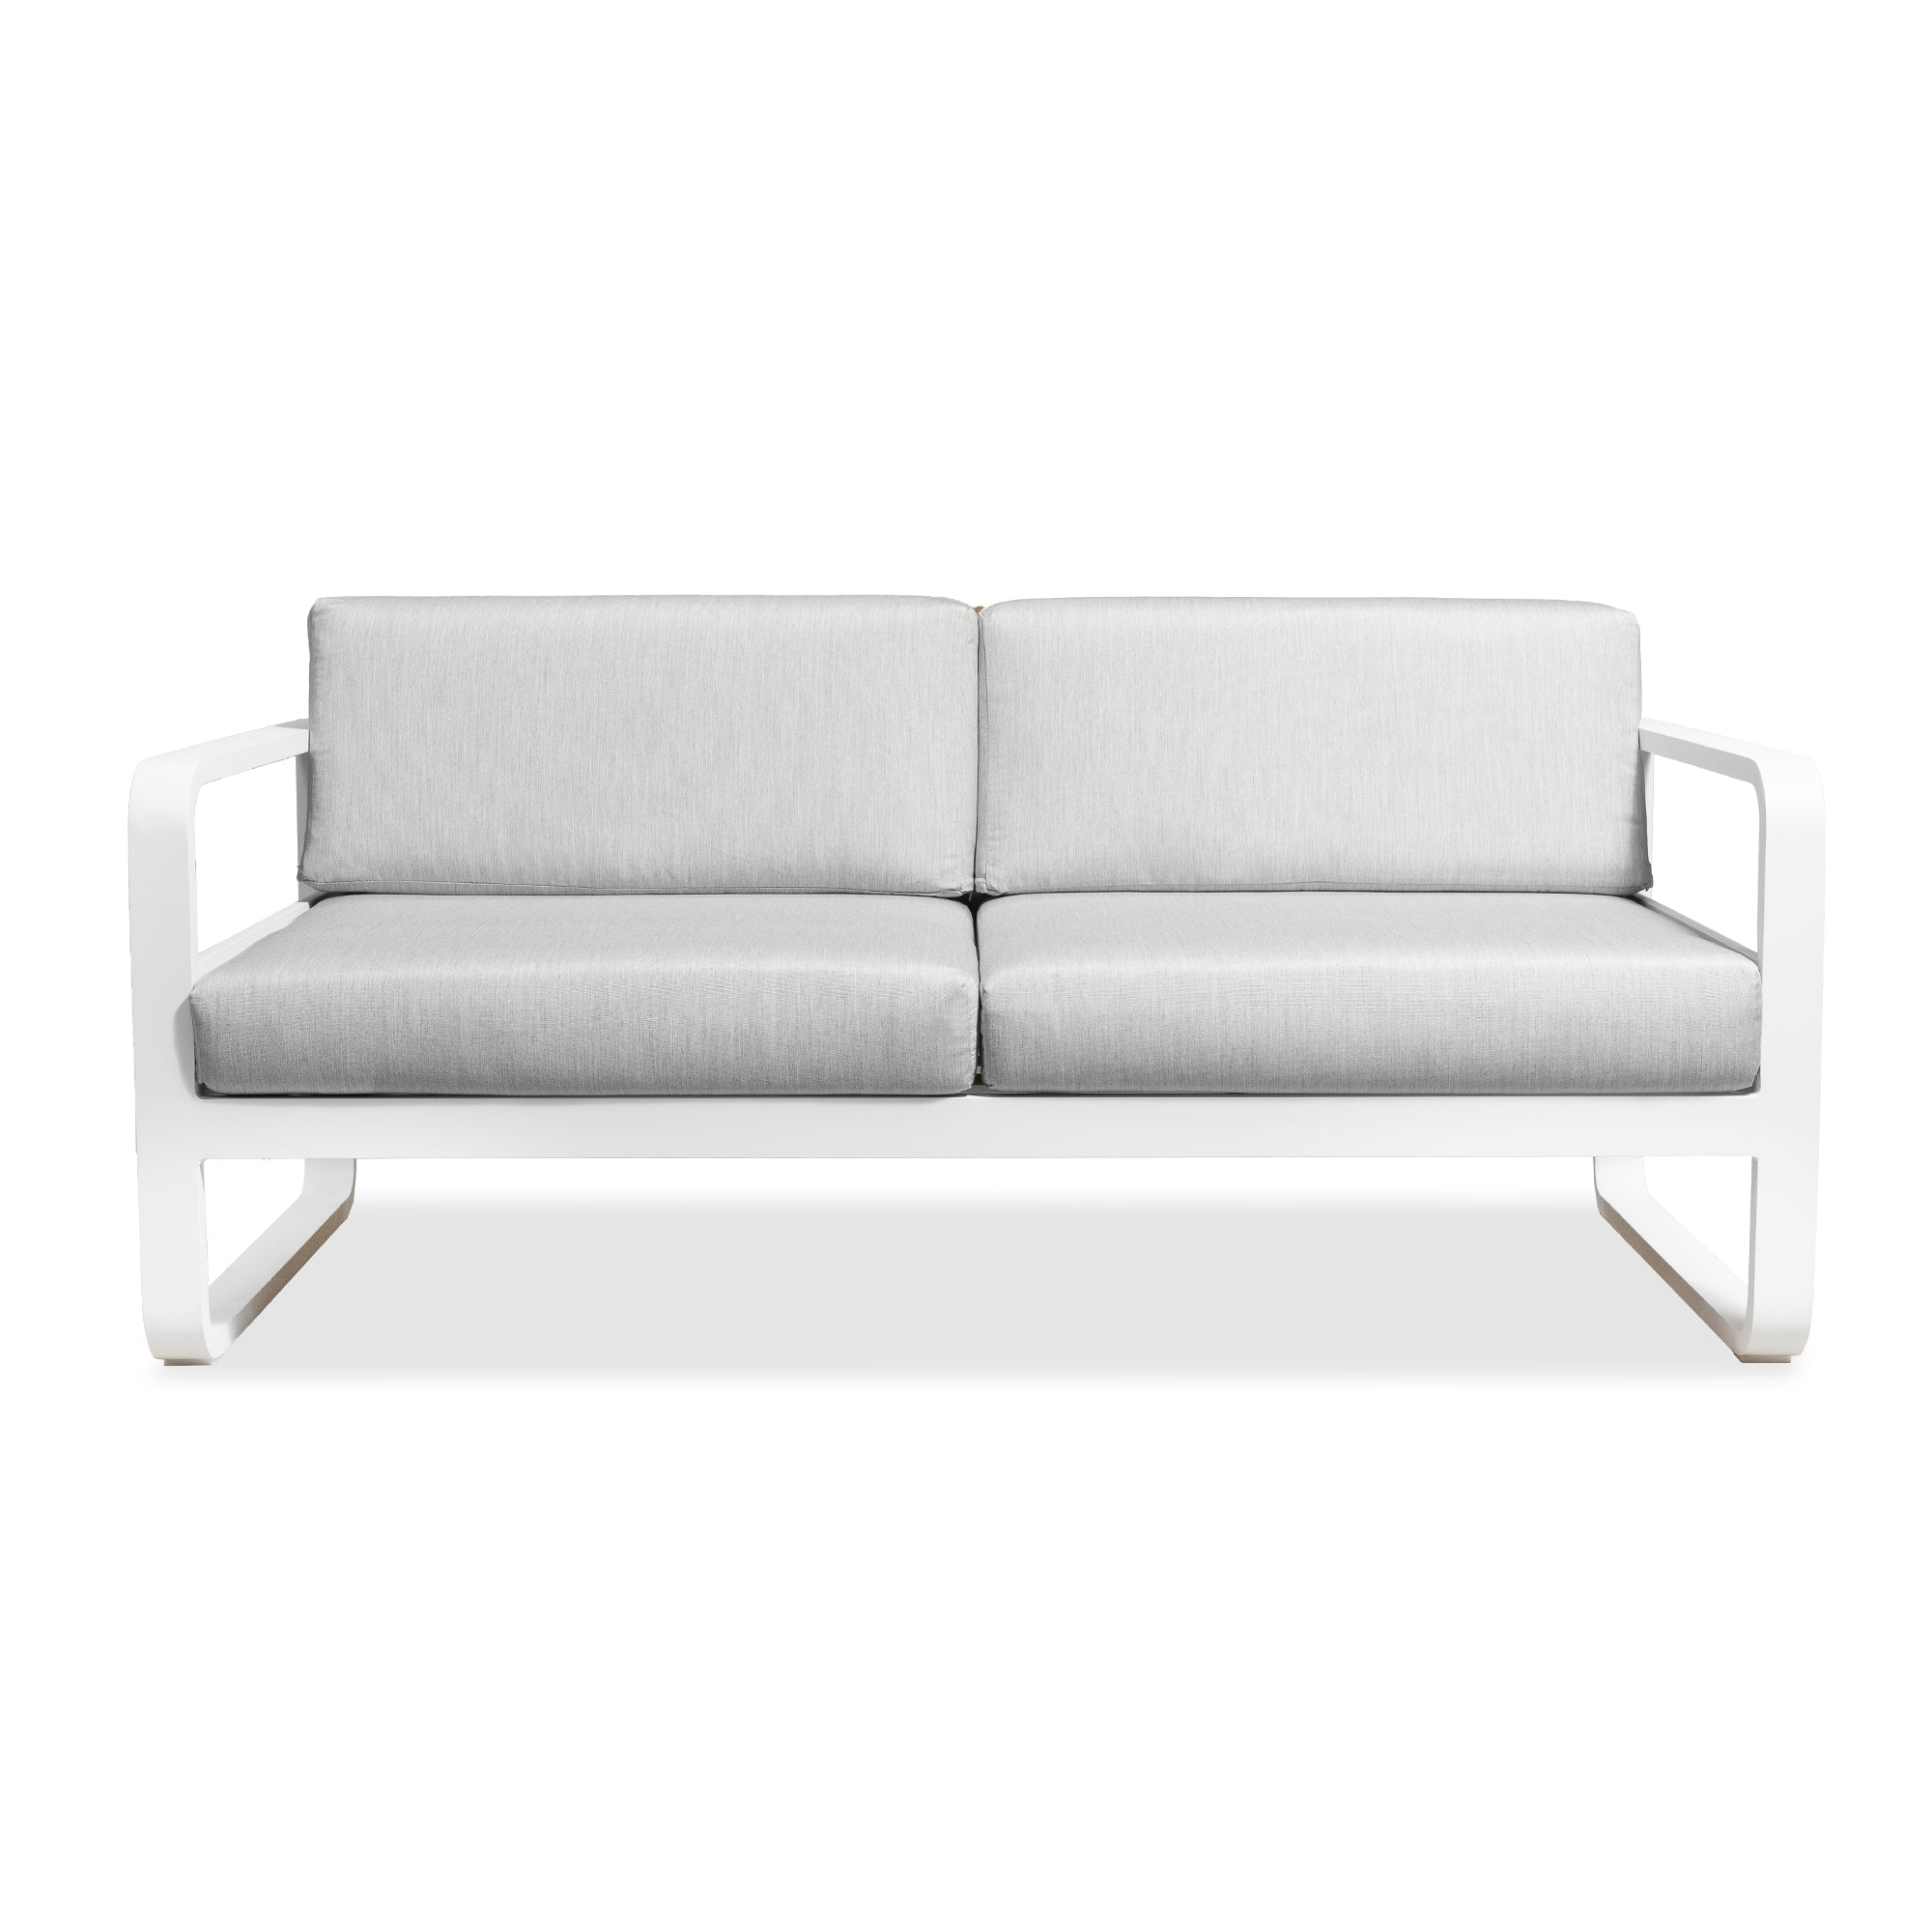 Eleve Outdoor Two Seat Sofa, Sofa - Home-Buy Interiors